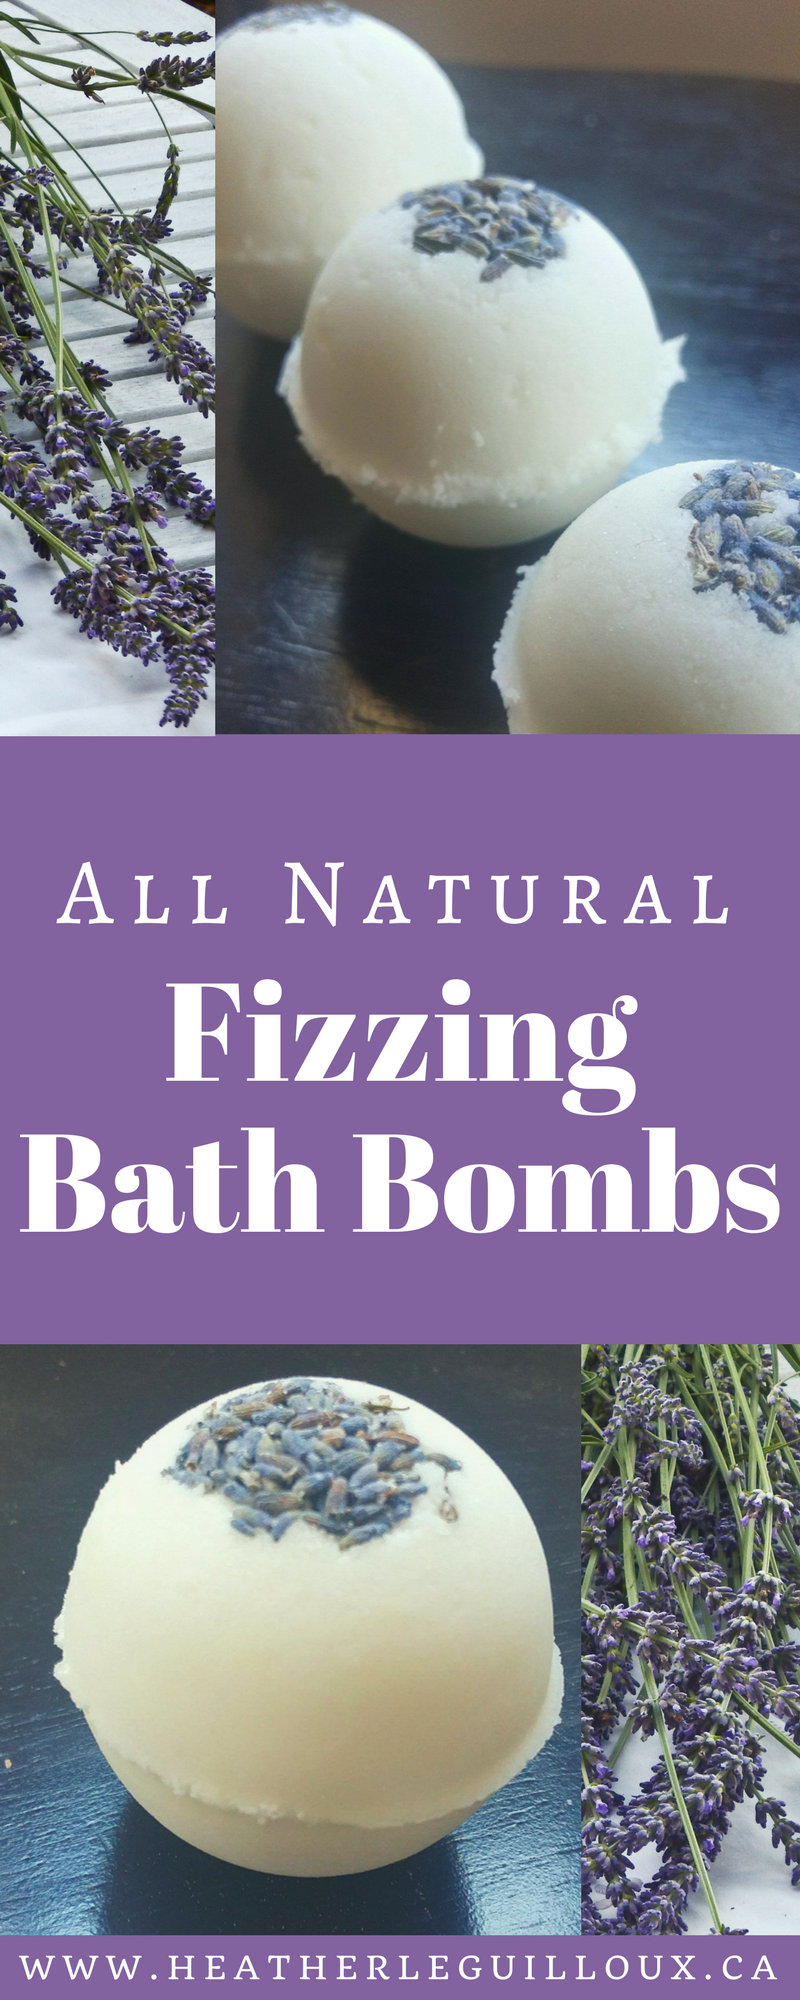 These all natural fizzing bath bombs made with doTERRA Lavender Essential Oil are great to stock up for your own spa days or give as gifts.